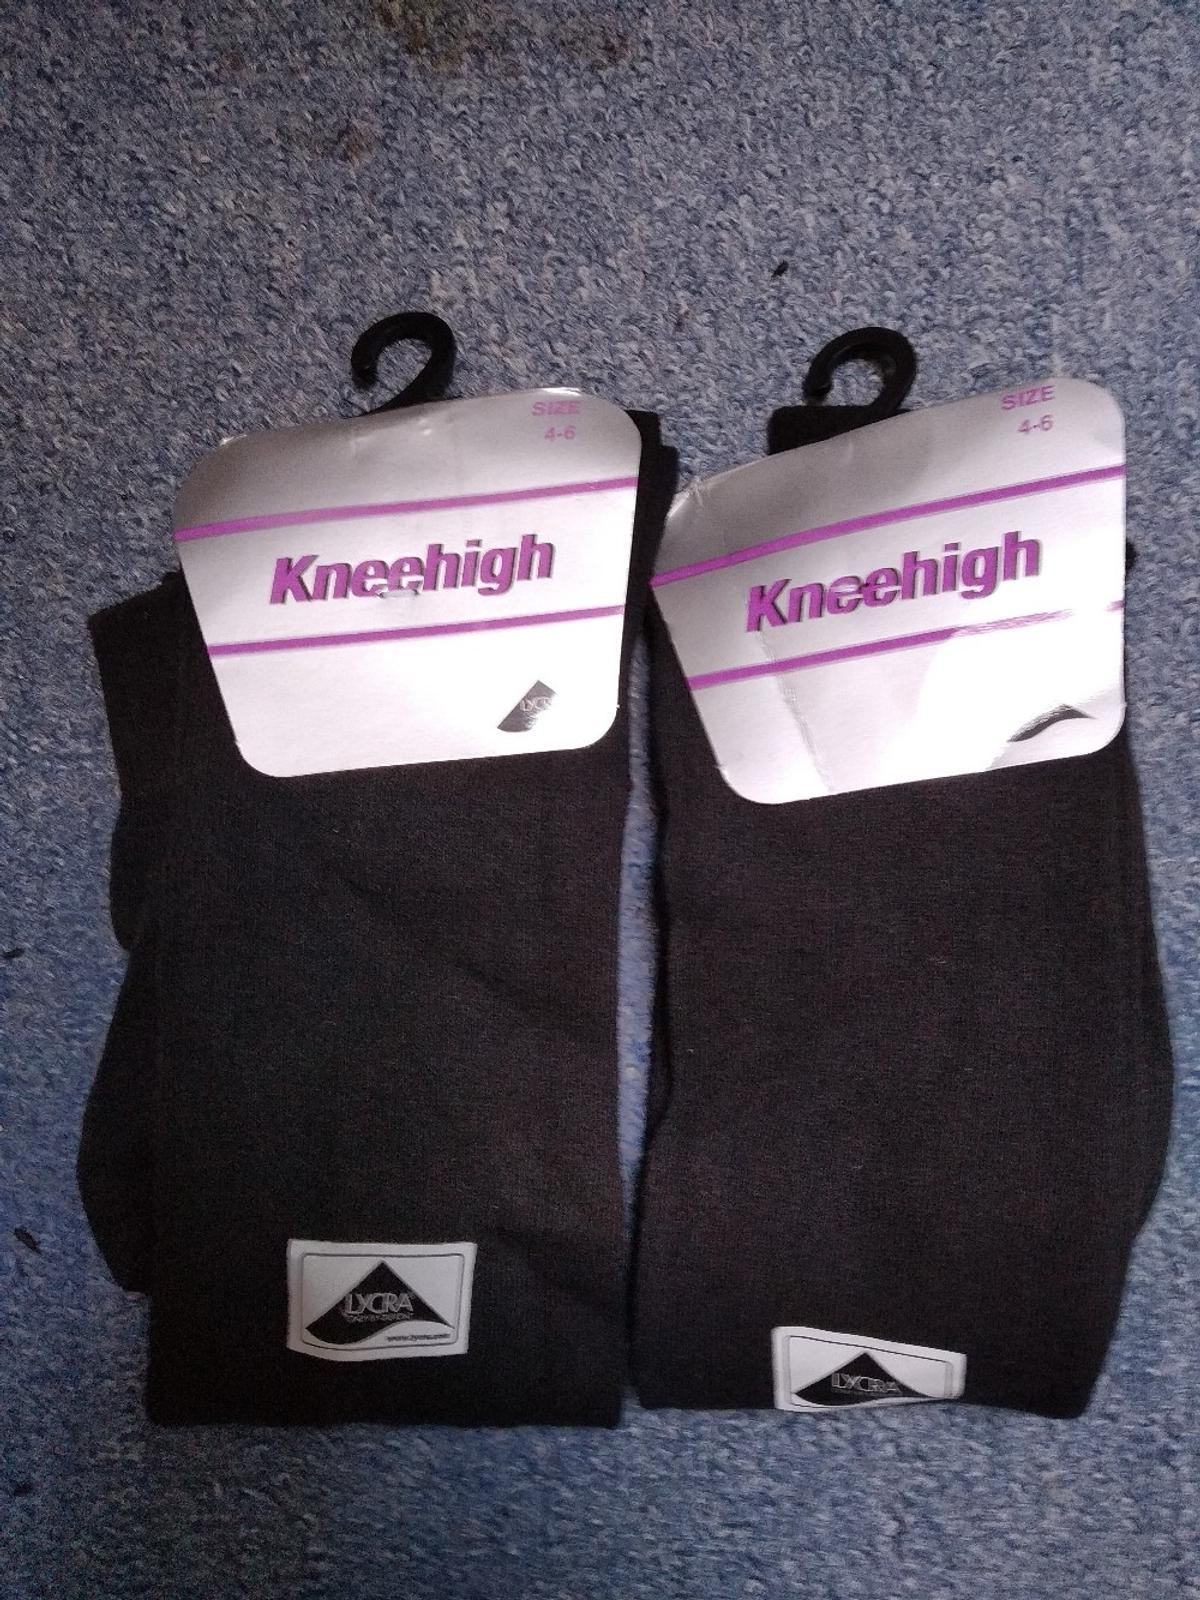 Pairs of women's knee high socks good quality. pay on collection or they can be posted.